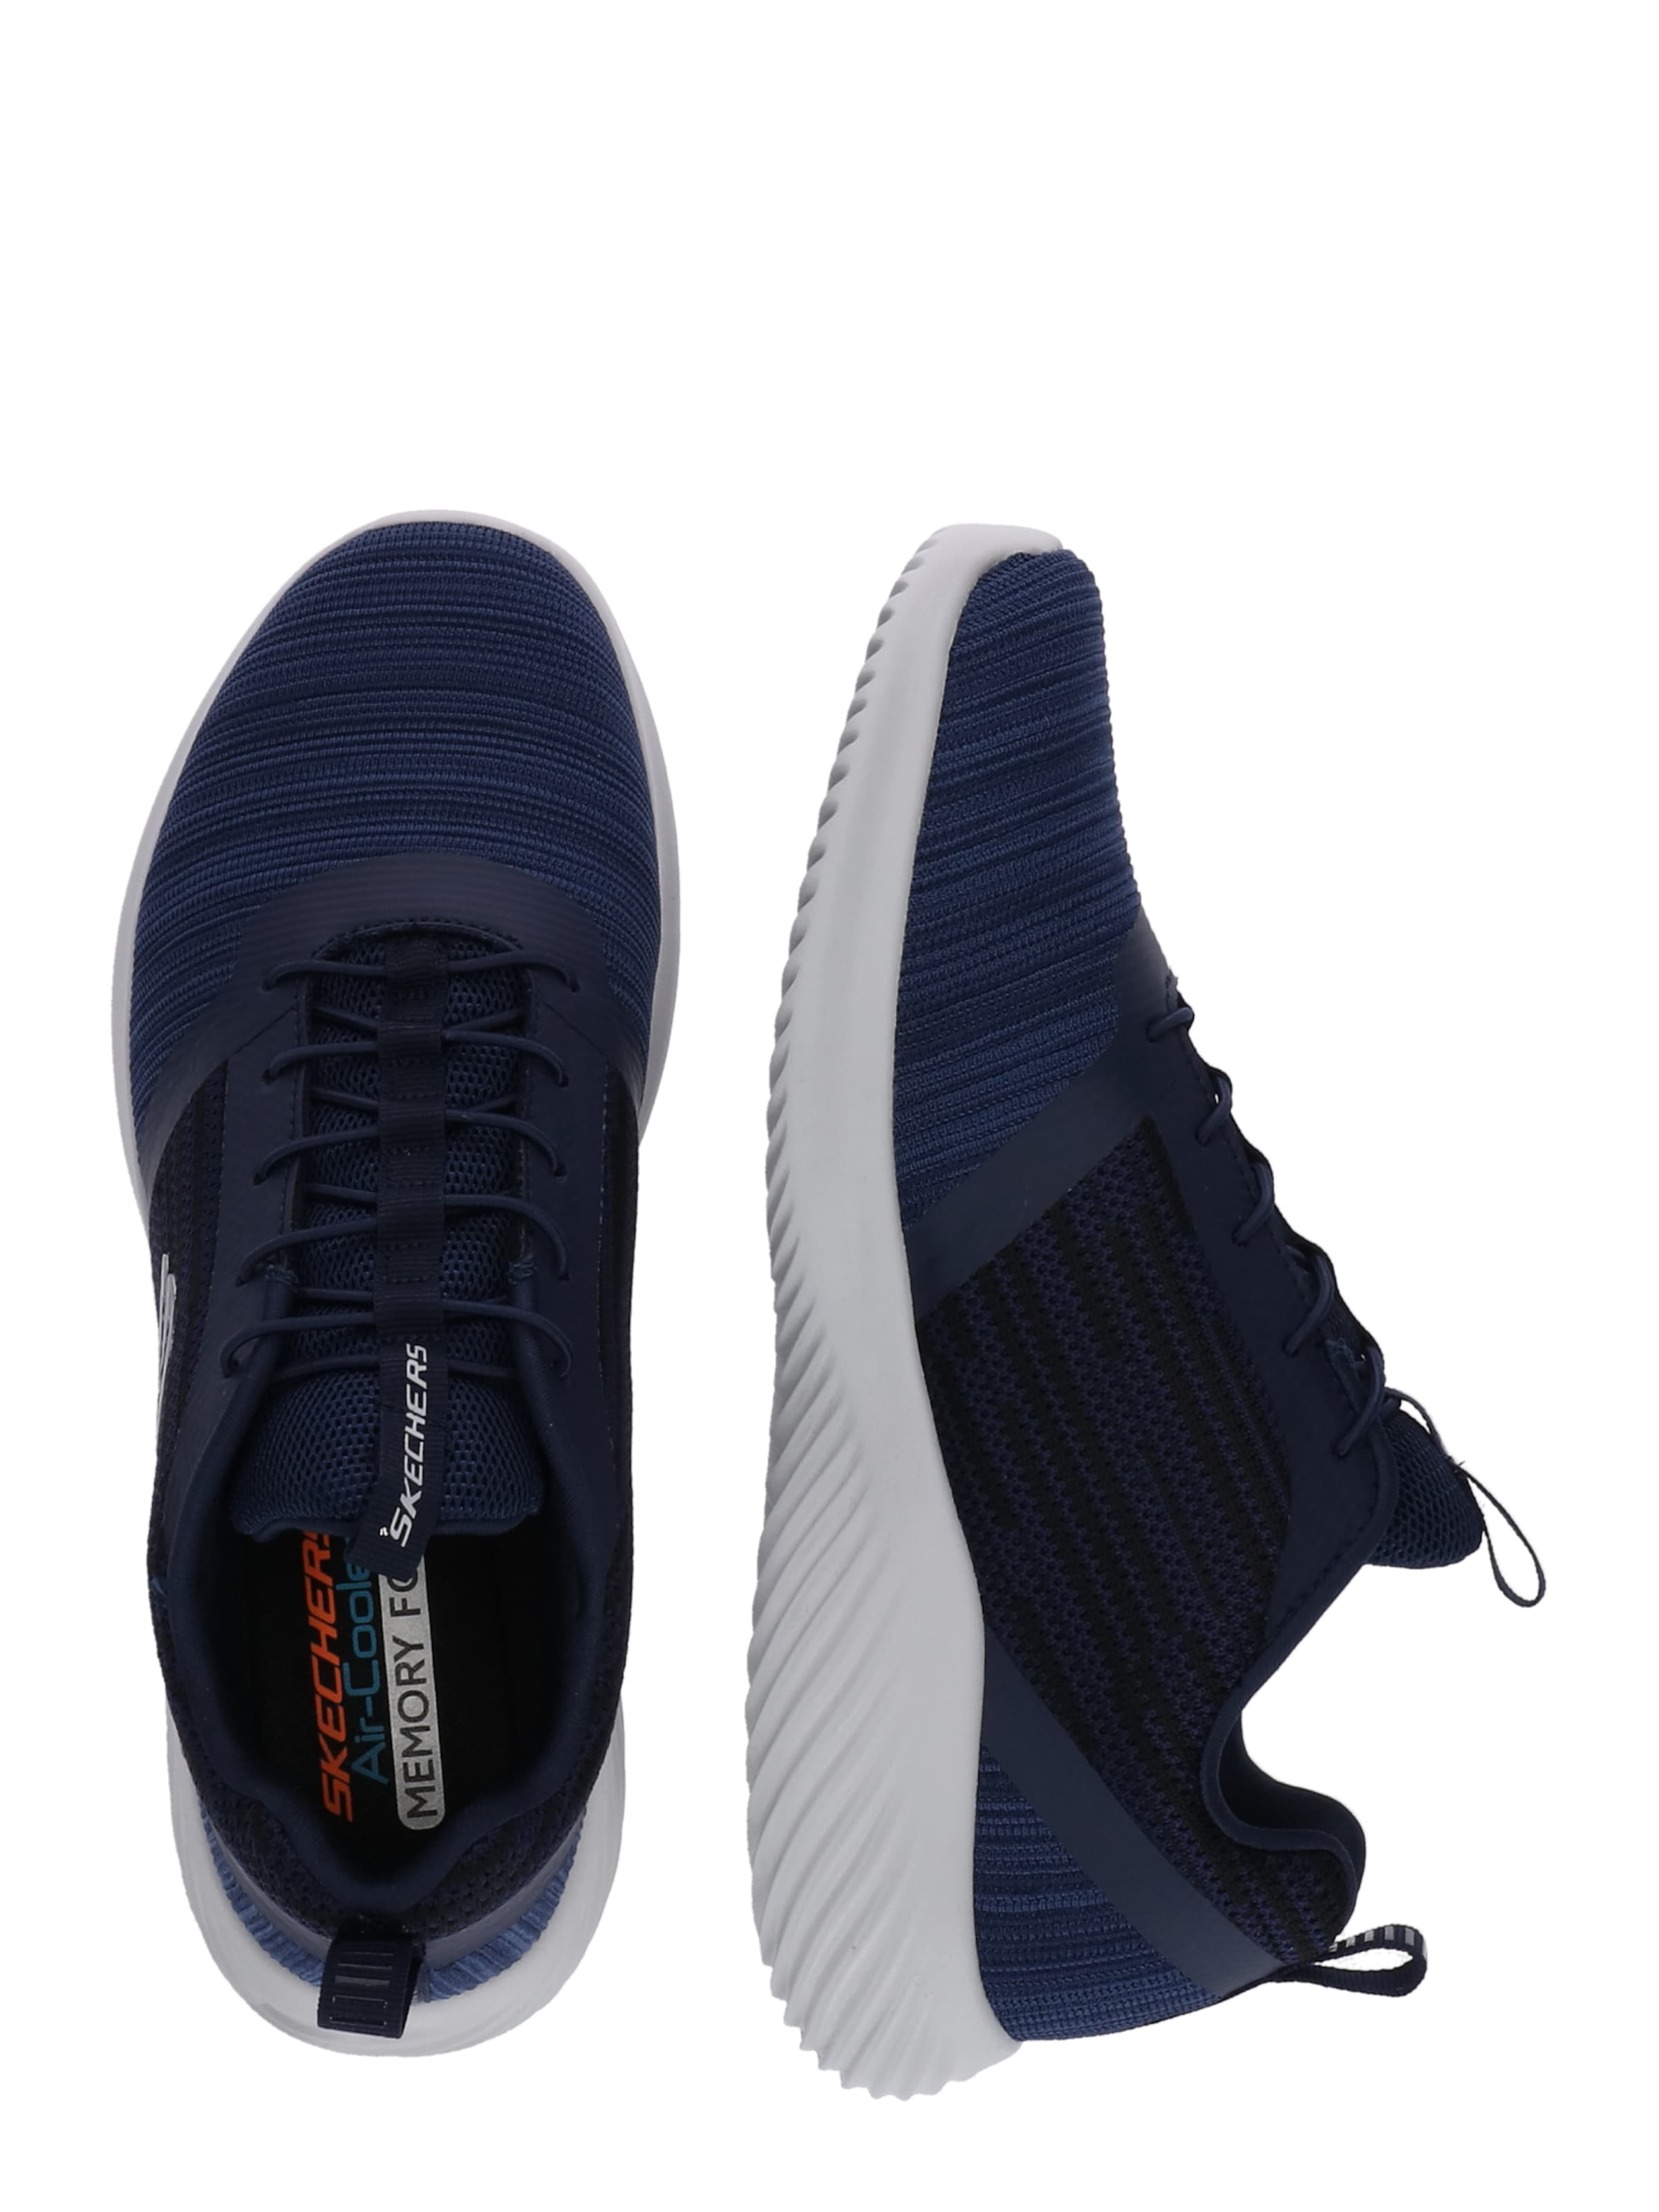 Navy Sneaker 'bounder' In Navy Skechers Skechers In Sneaker 'bounder' Skechers Sneaker 7b6vfYgy